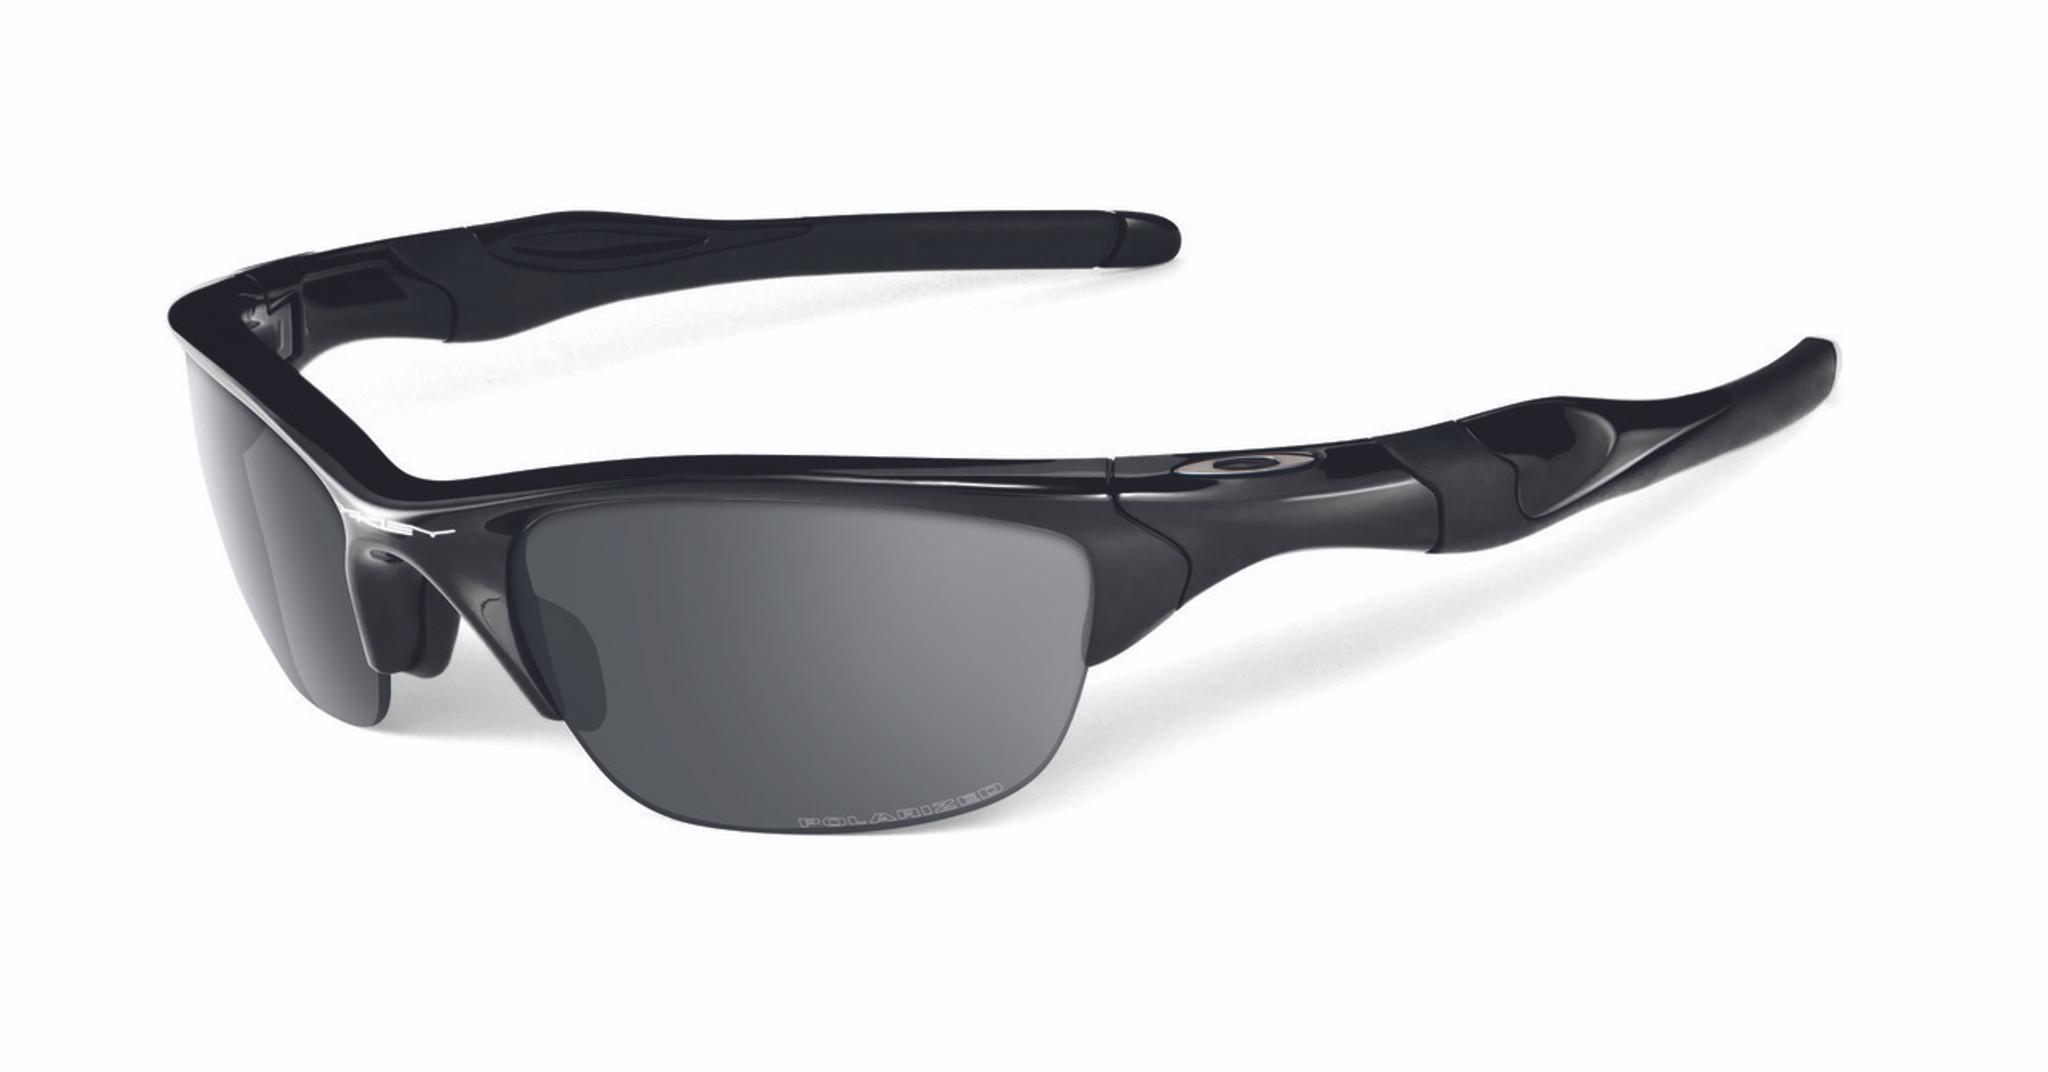 c4b6bfcc5d3 Oakley Polarised Half Jacket 2.0 Polished Black Frame and Black iridium  lens.